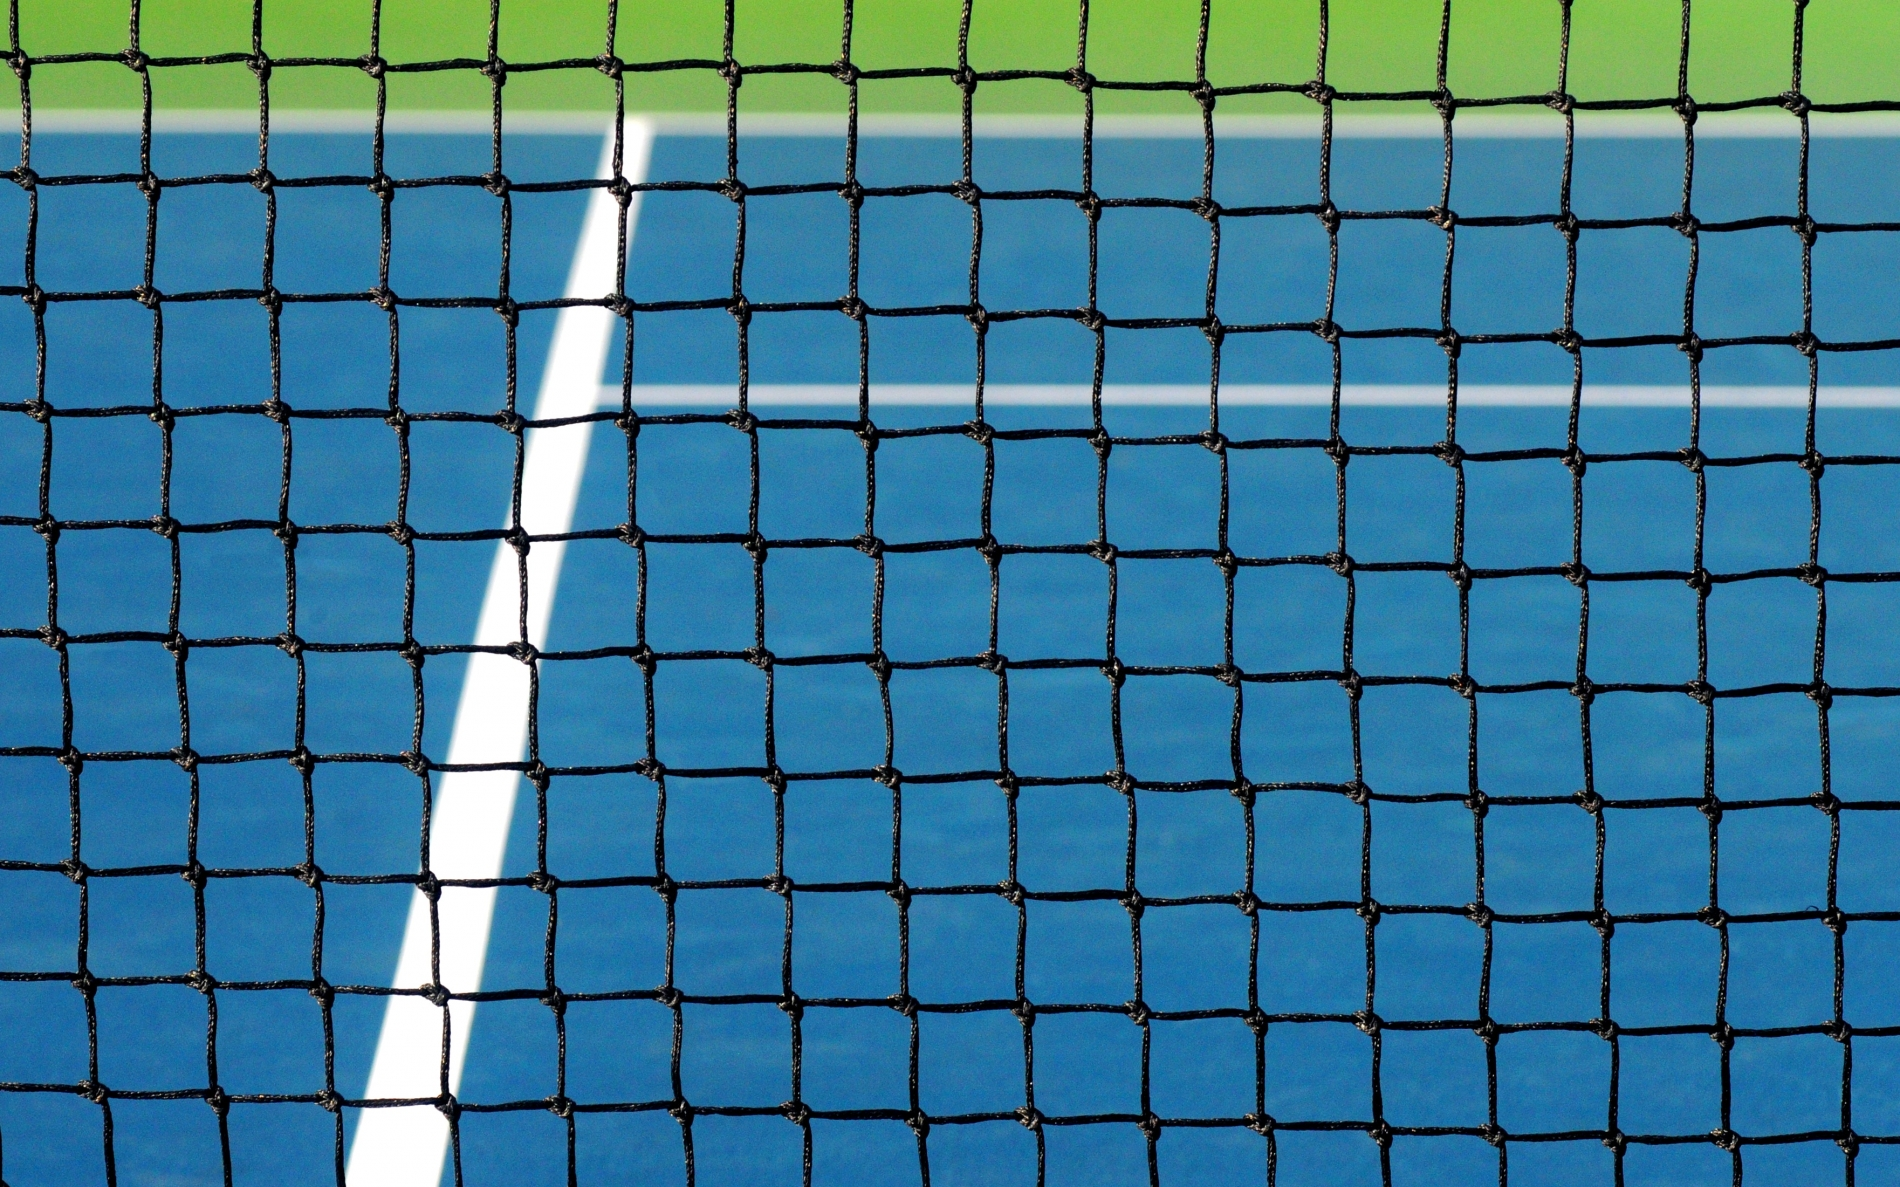 A blue tennis court with white lines looking through the black netting